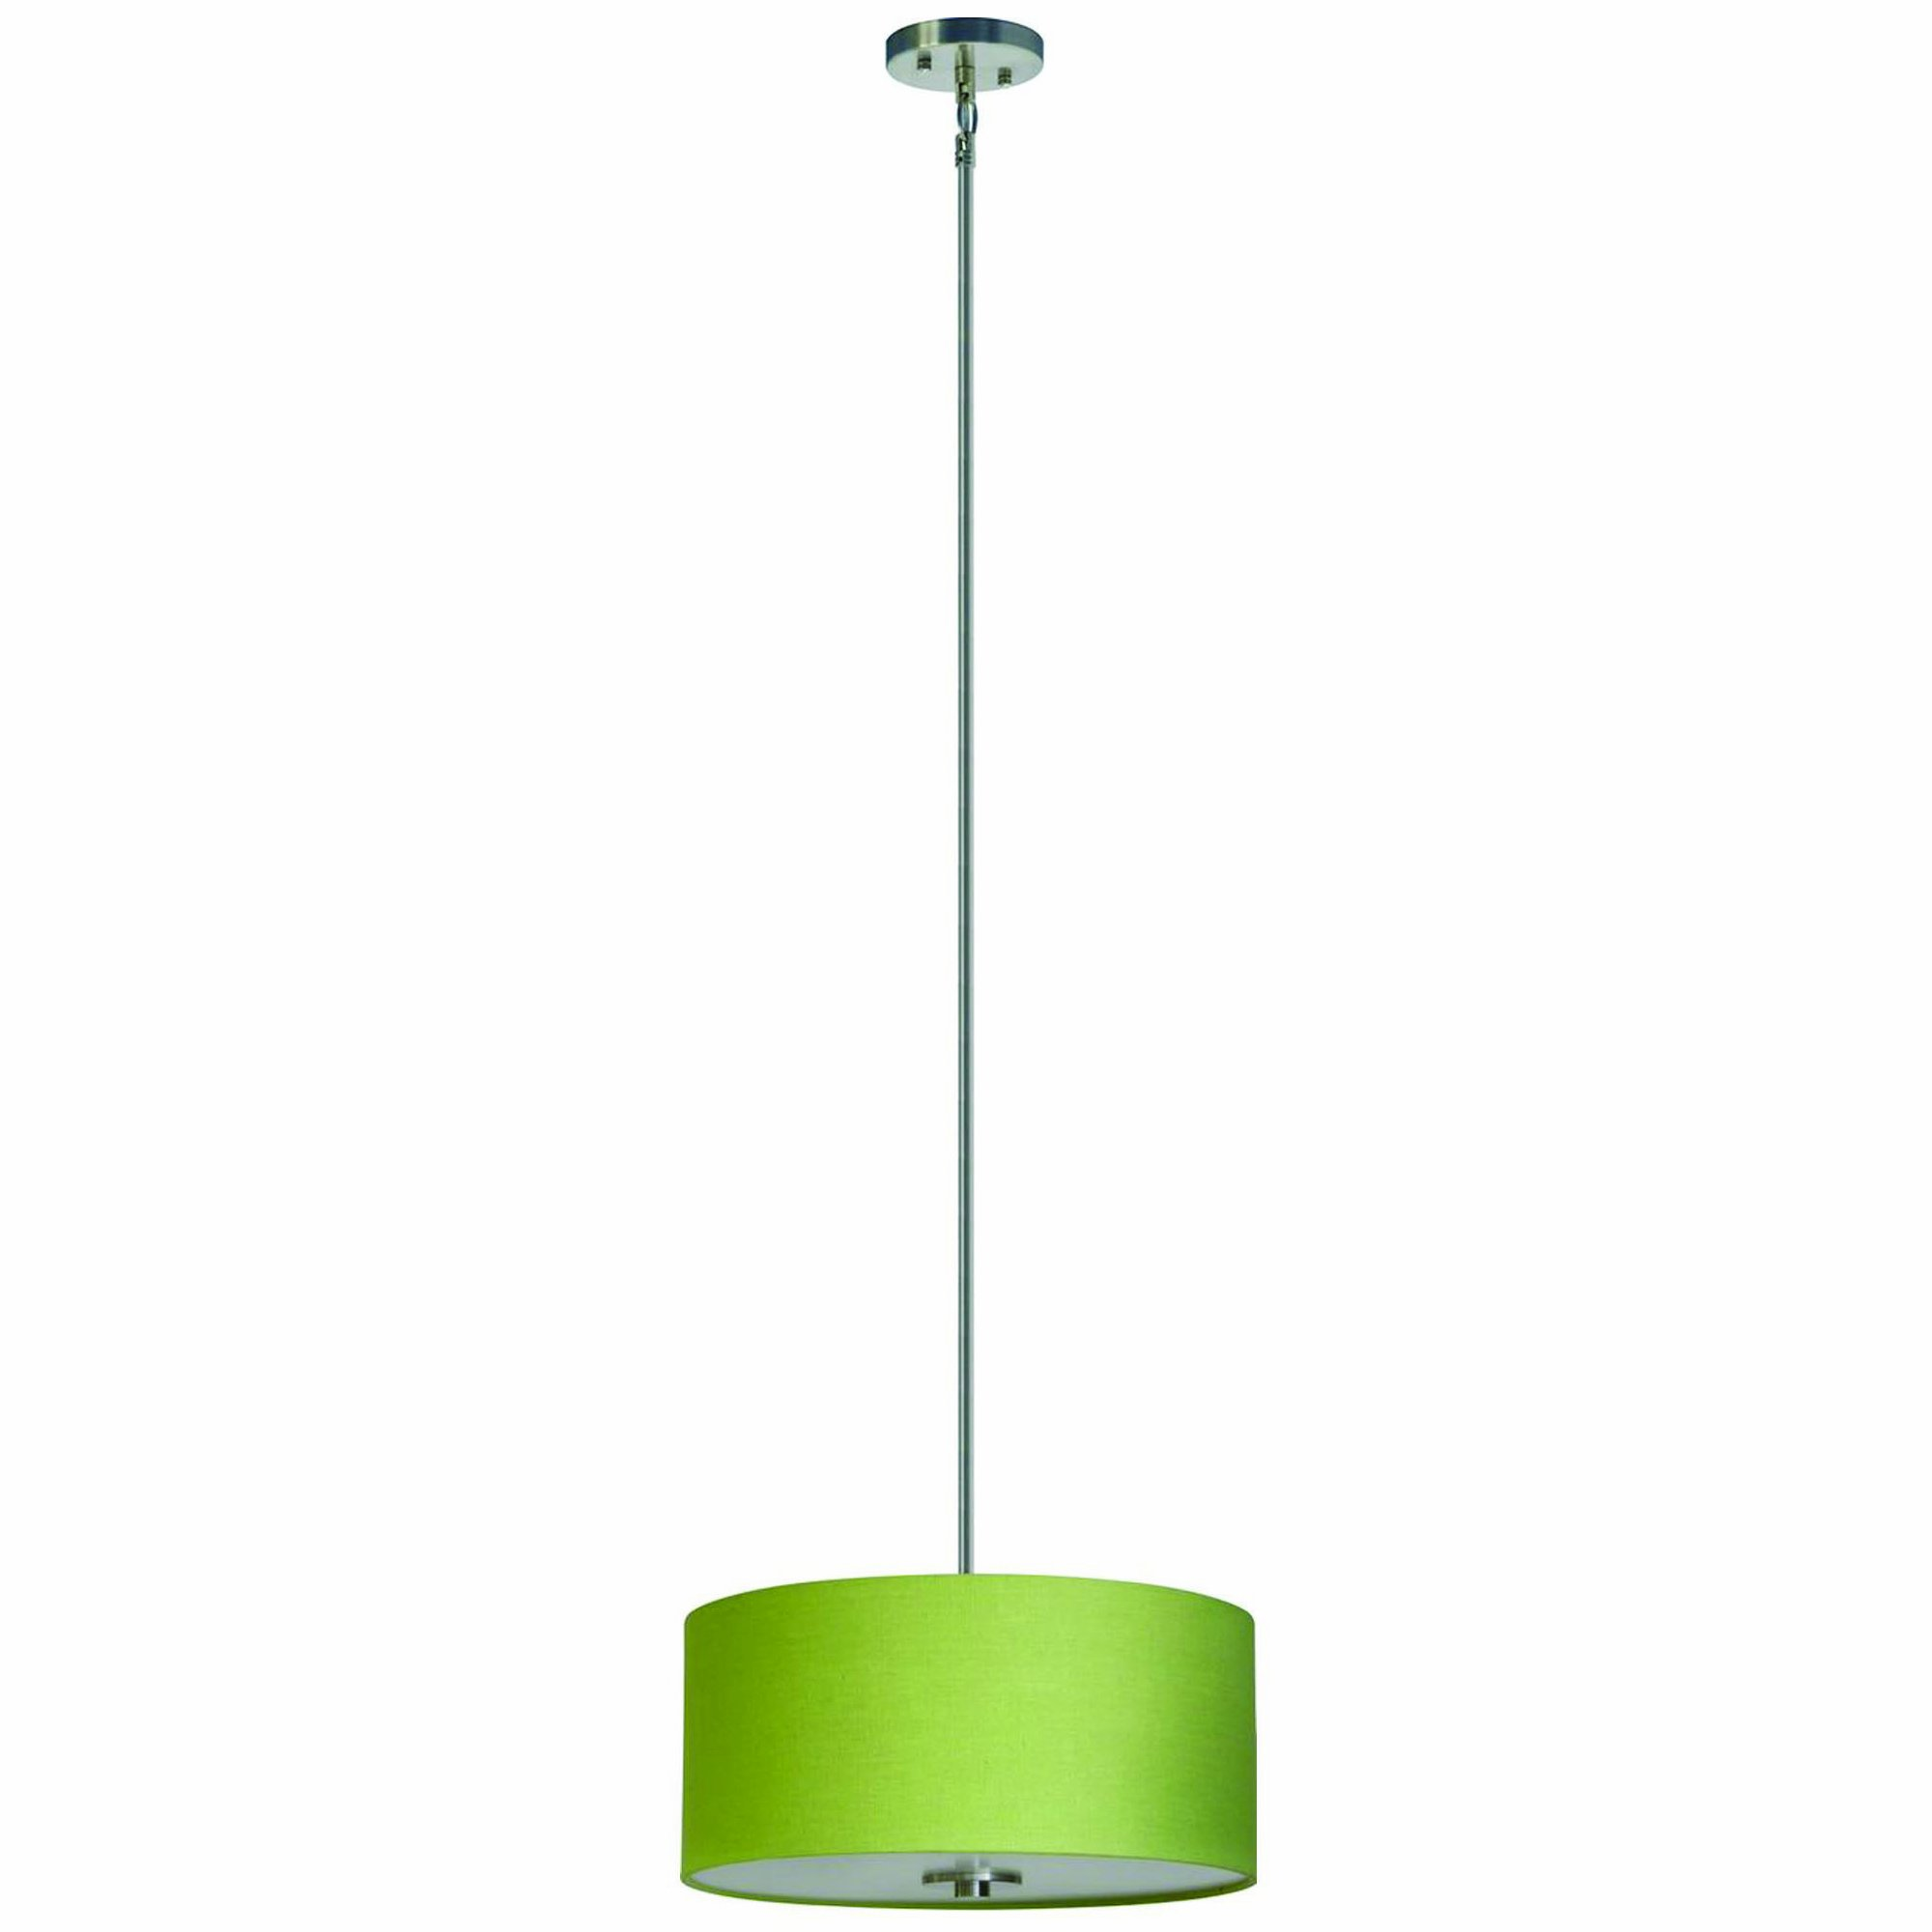 Yosemite Home Decor SH1607-3P-RLSS Lyell Forks Family 3-Light Satin Steel Pendant with Riche Lime Shade, Green by Yosemite Home Decor